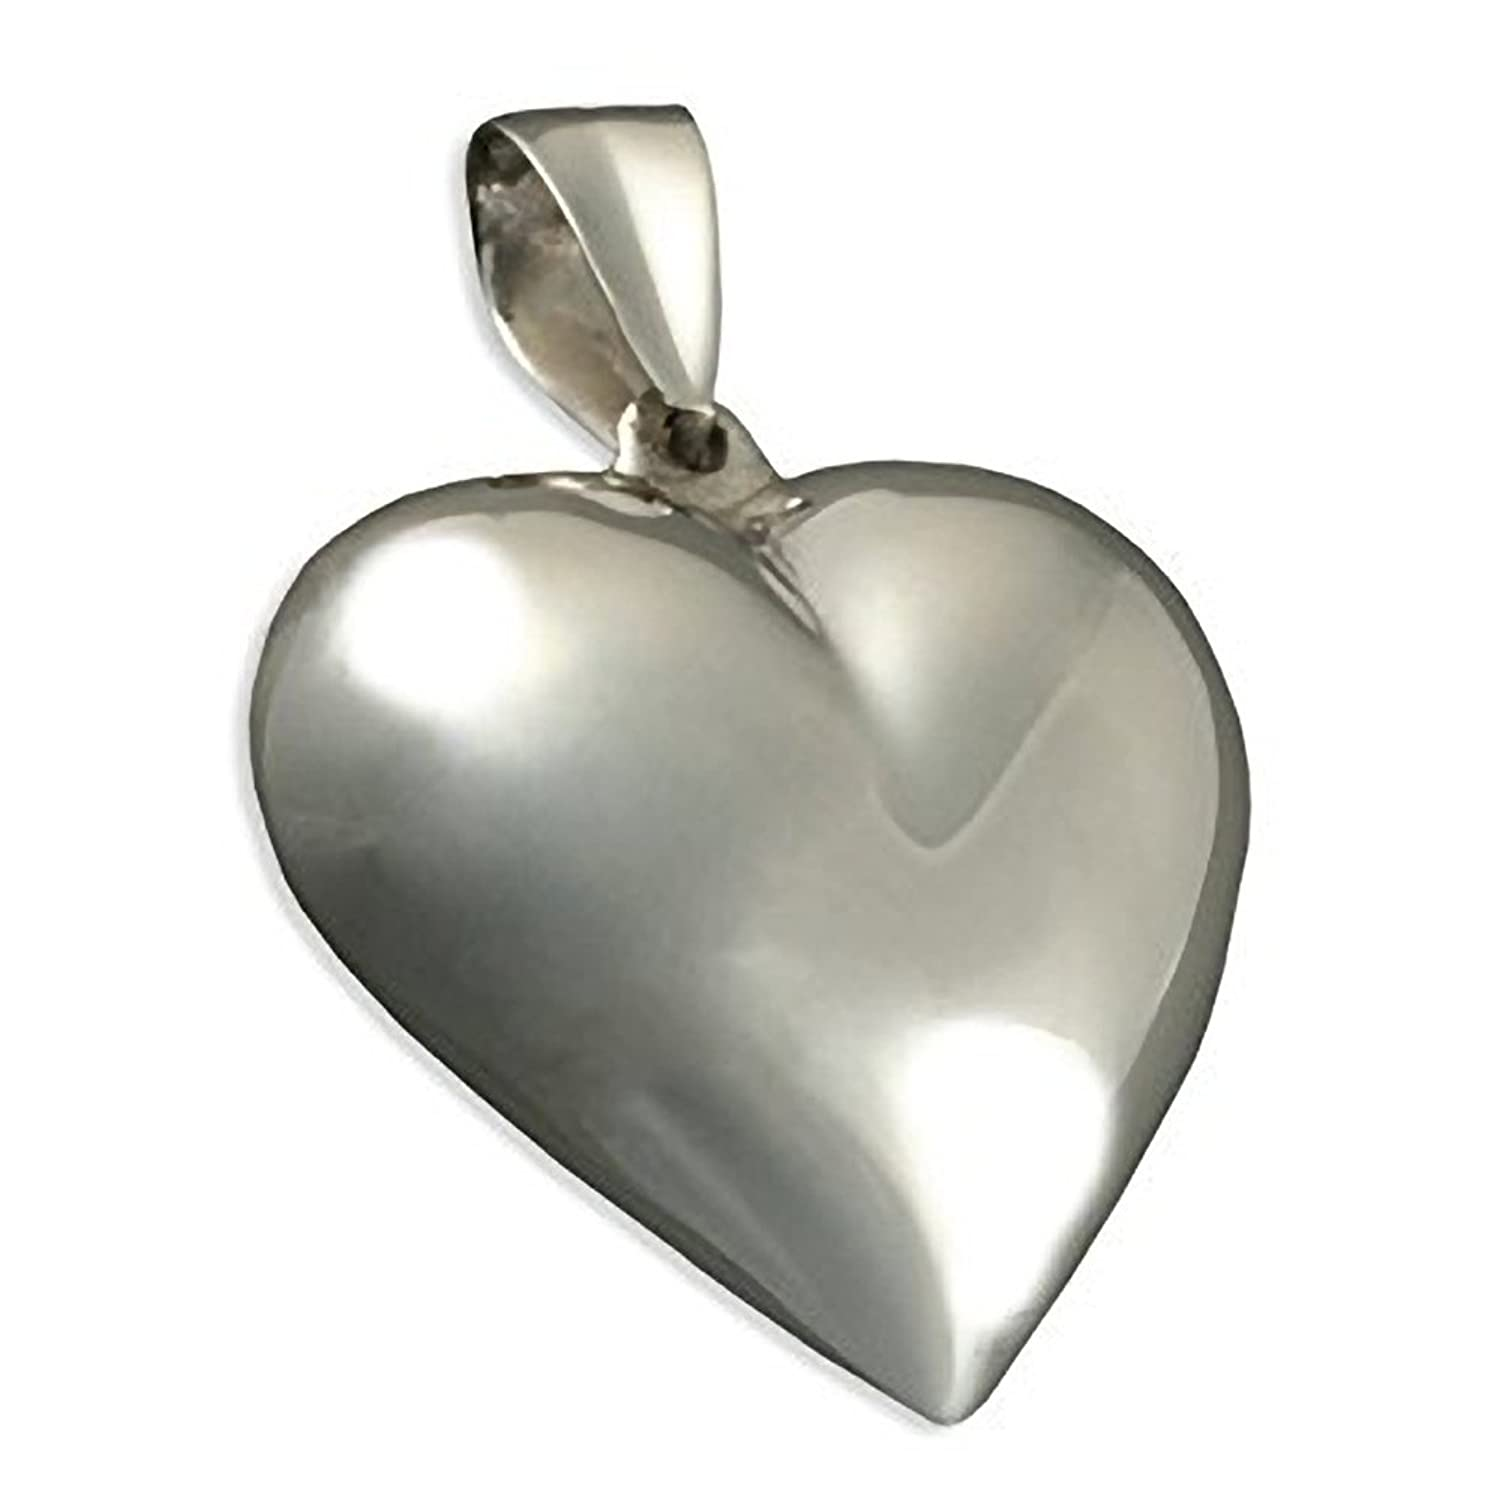 Tuscany silver sterling silver large puffed heart pendant amazon extra large puffed heart sterling silver pendant necklace on 16 18 or mozeypictures Gallery